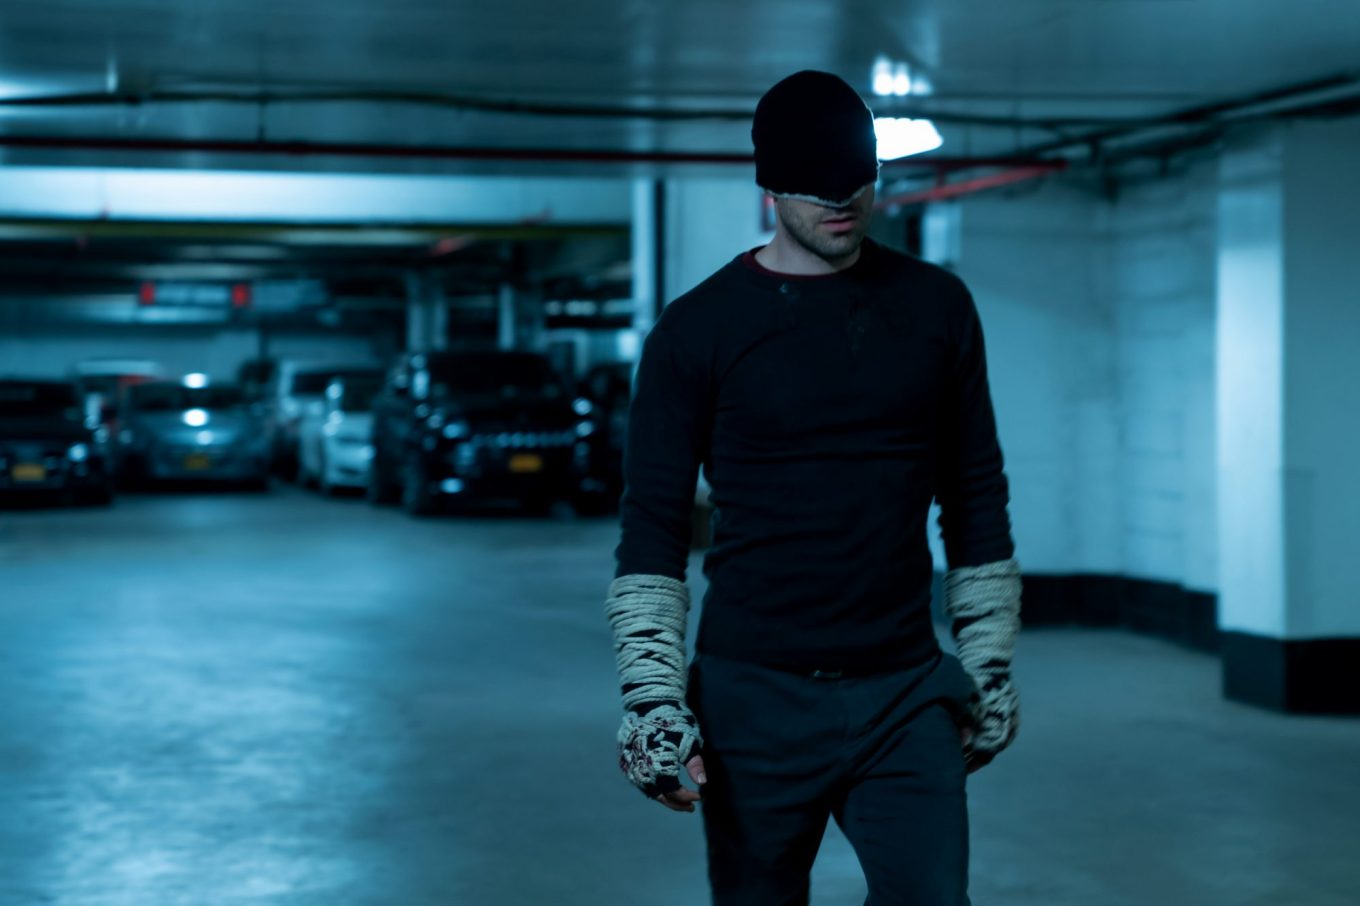 daredevil-season-3-e1539888008263.jpg